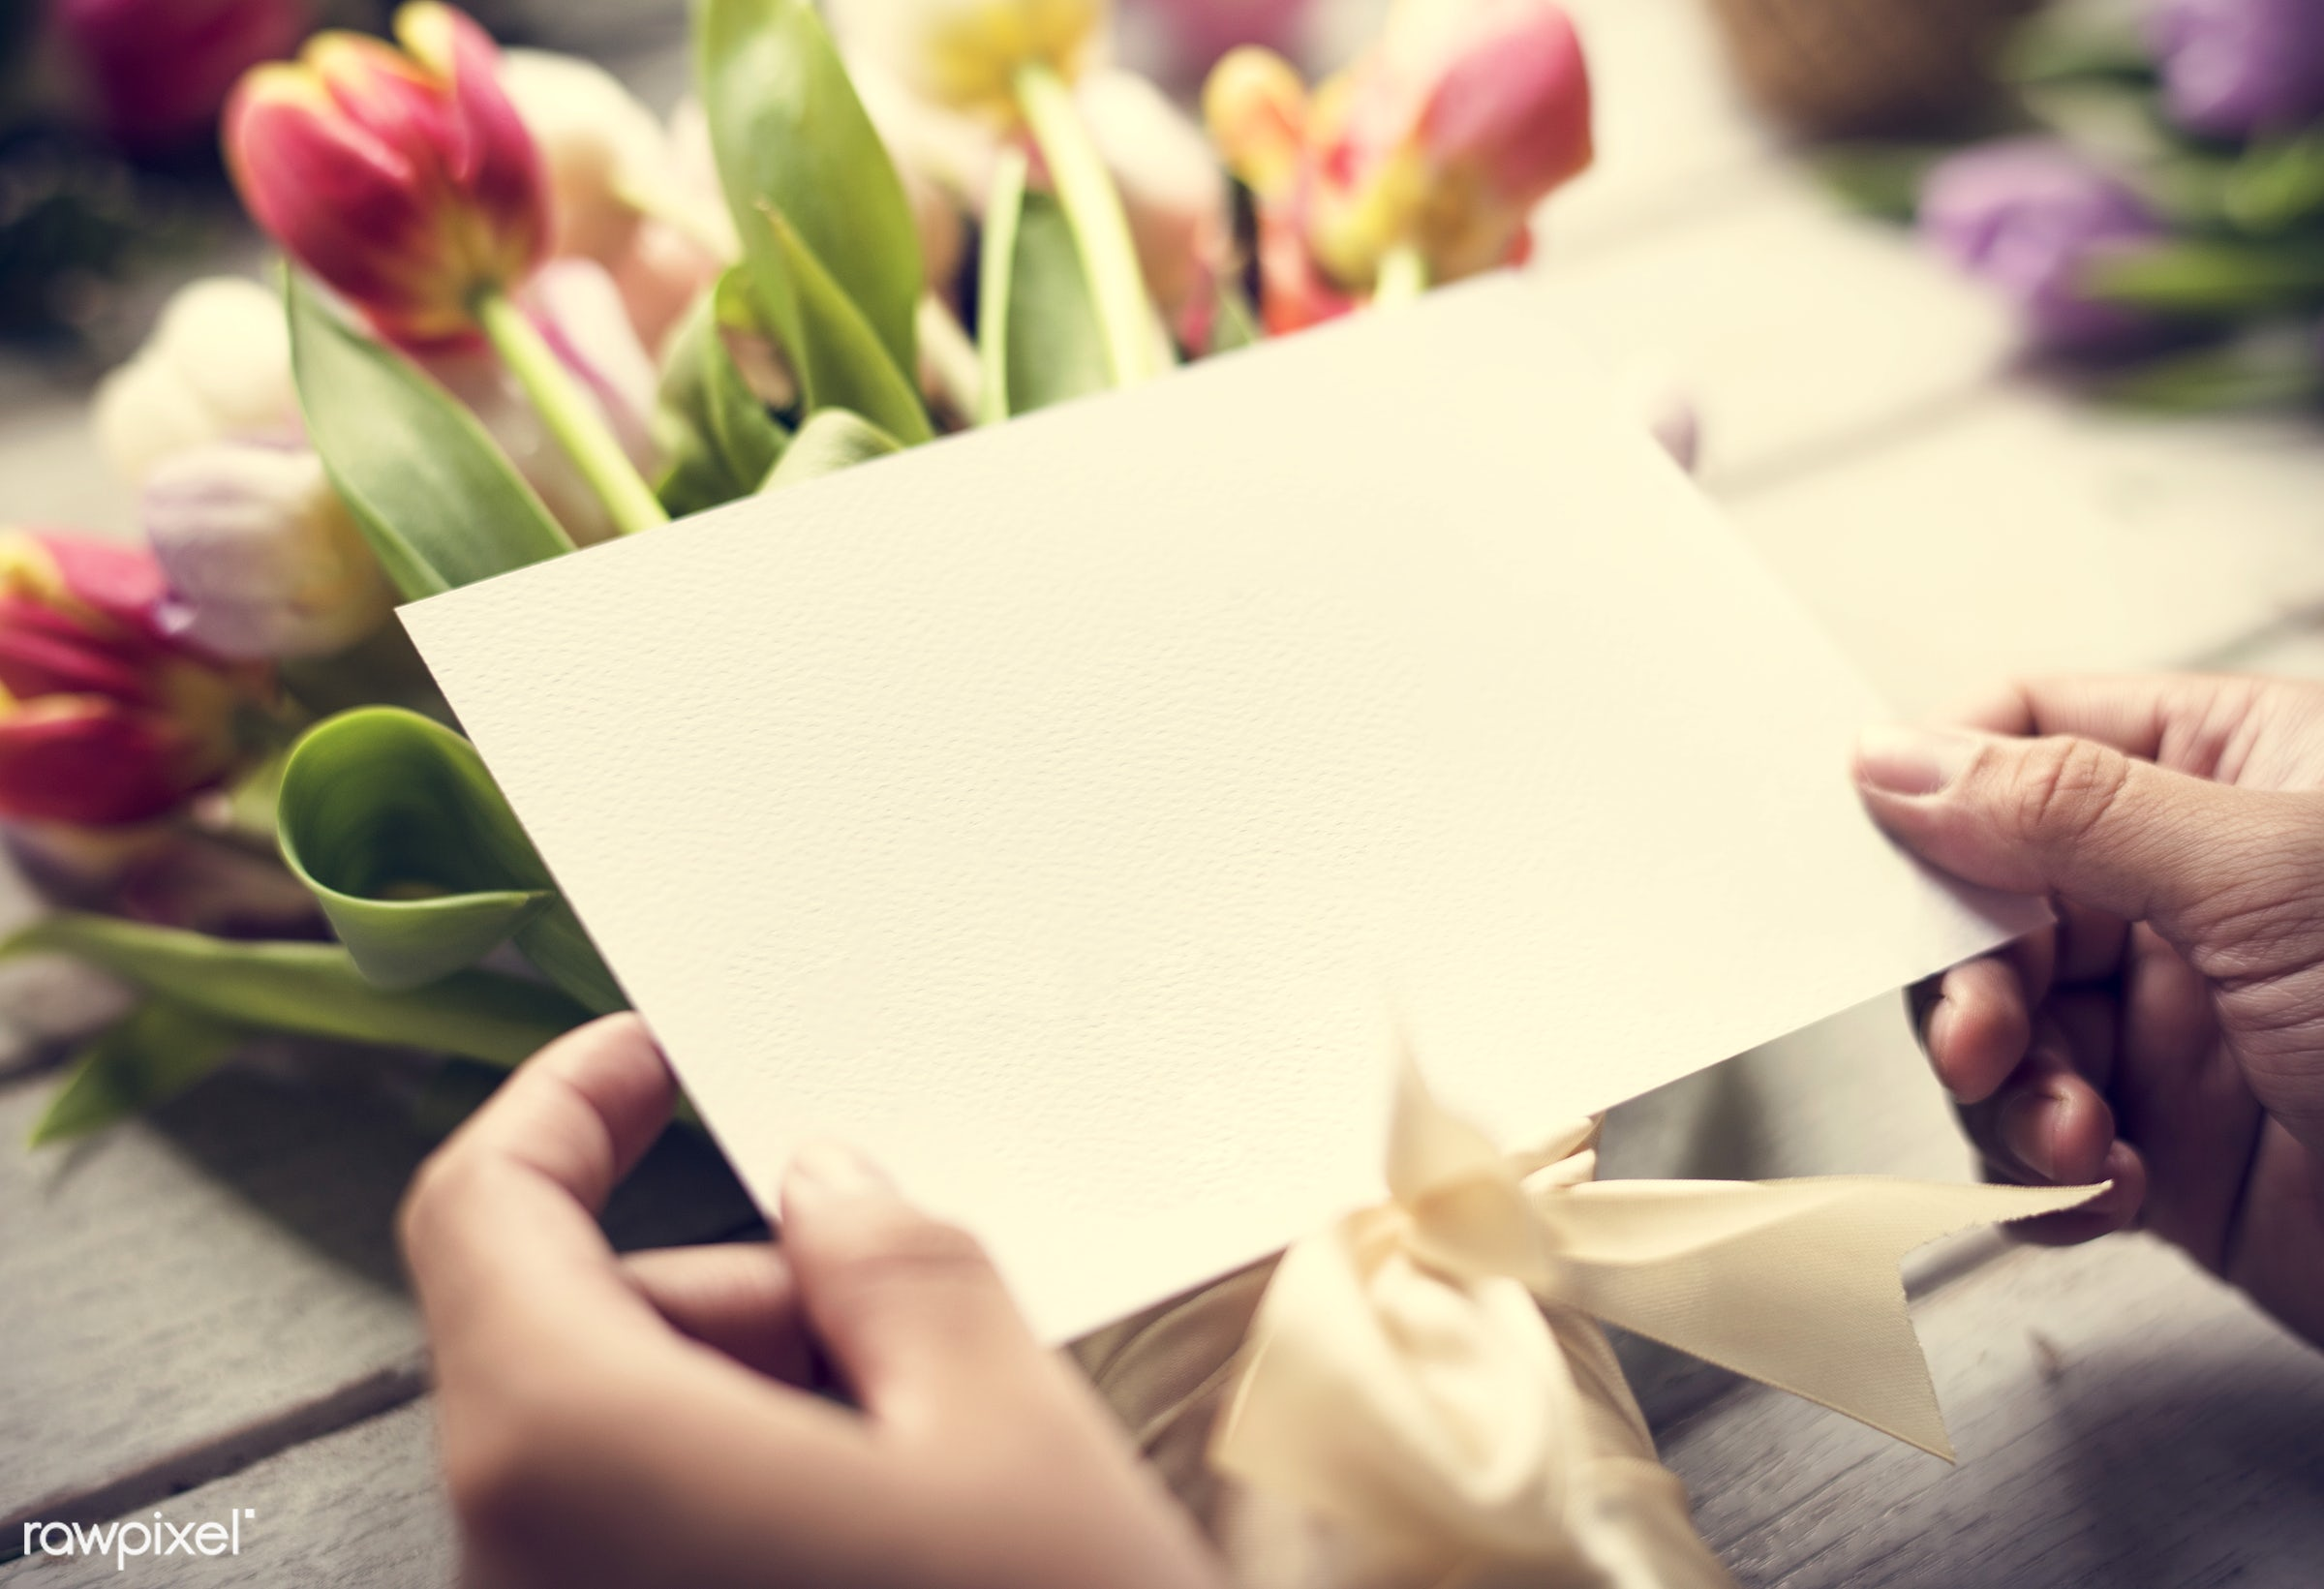 bouquet, detail, person, wish, show, people, decor, nature, empty, card, flowers, greeting, refreshment, hold, florist,...